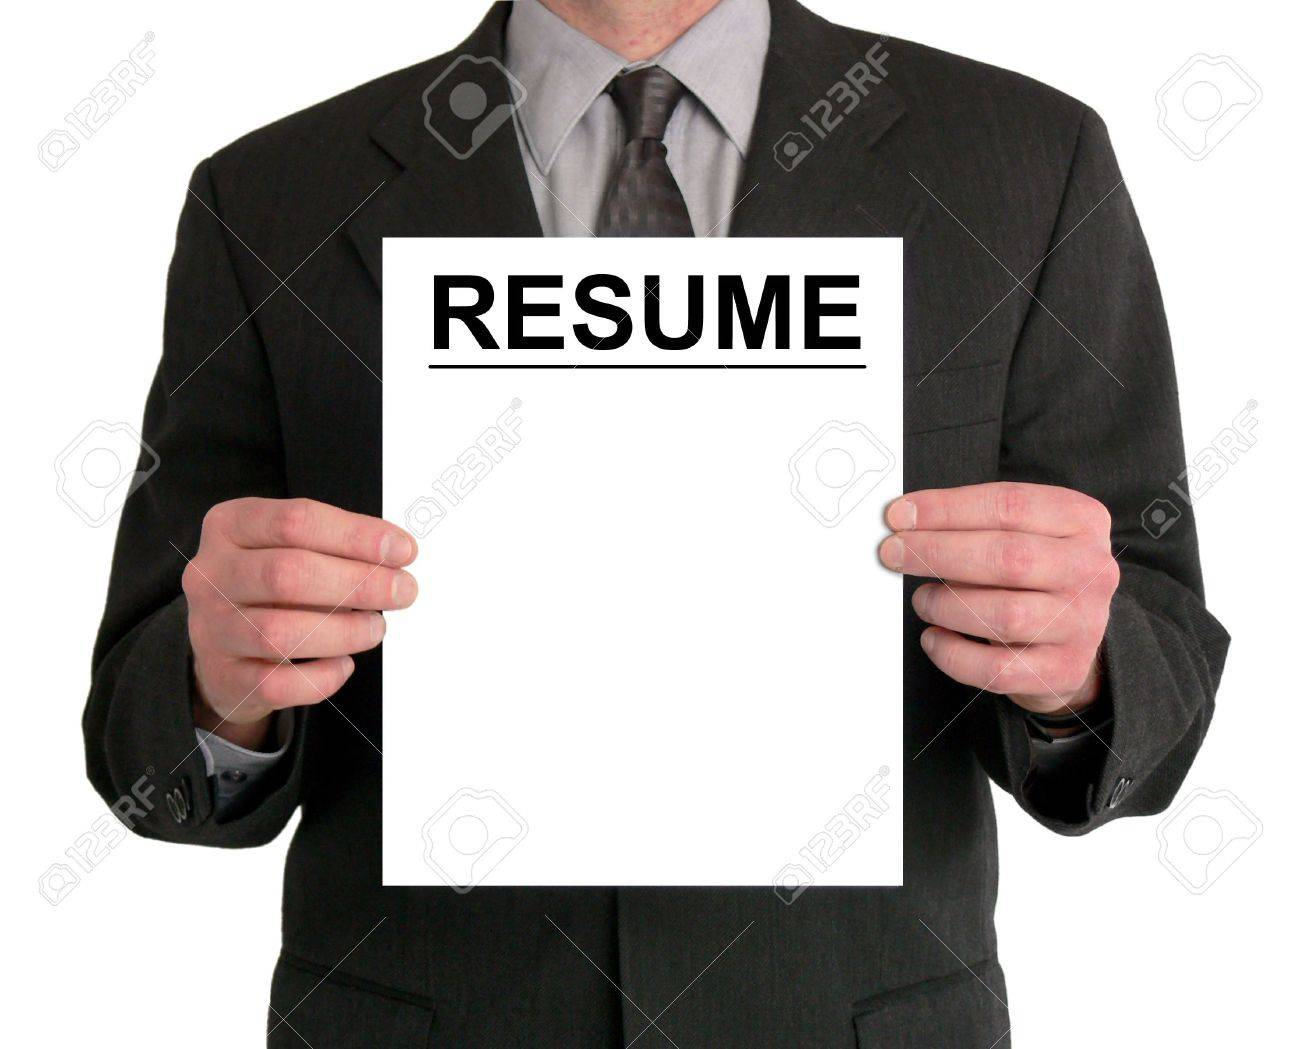 Image of a businessman's torso. He is holding a resume in front of him. Stock Photo - 417574